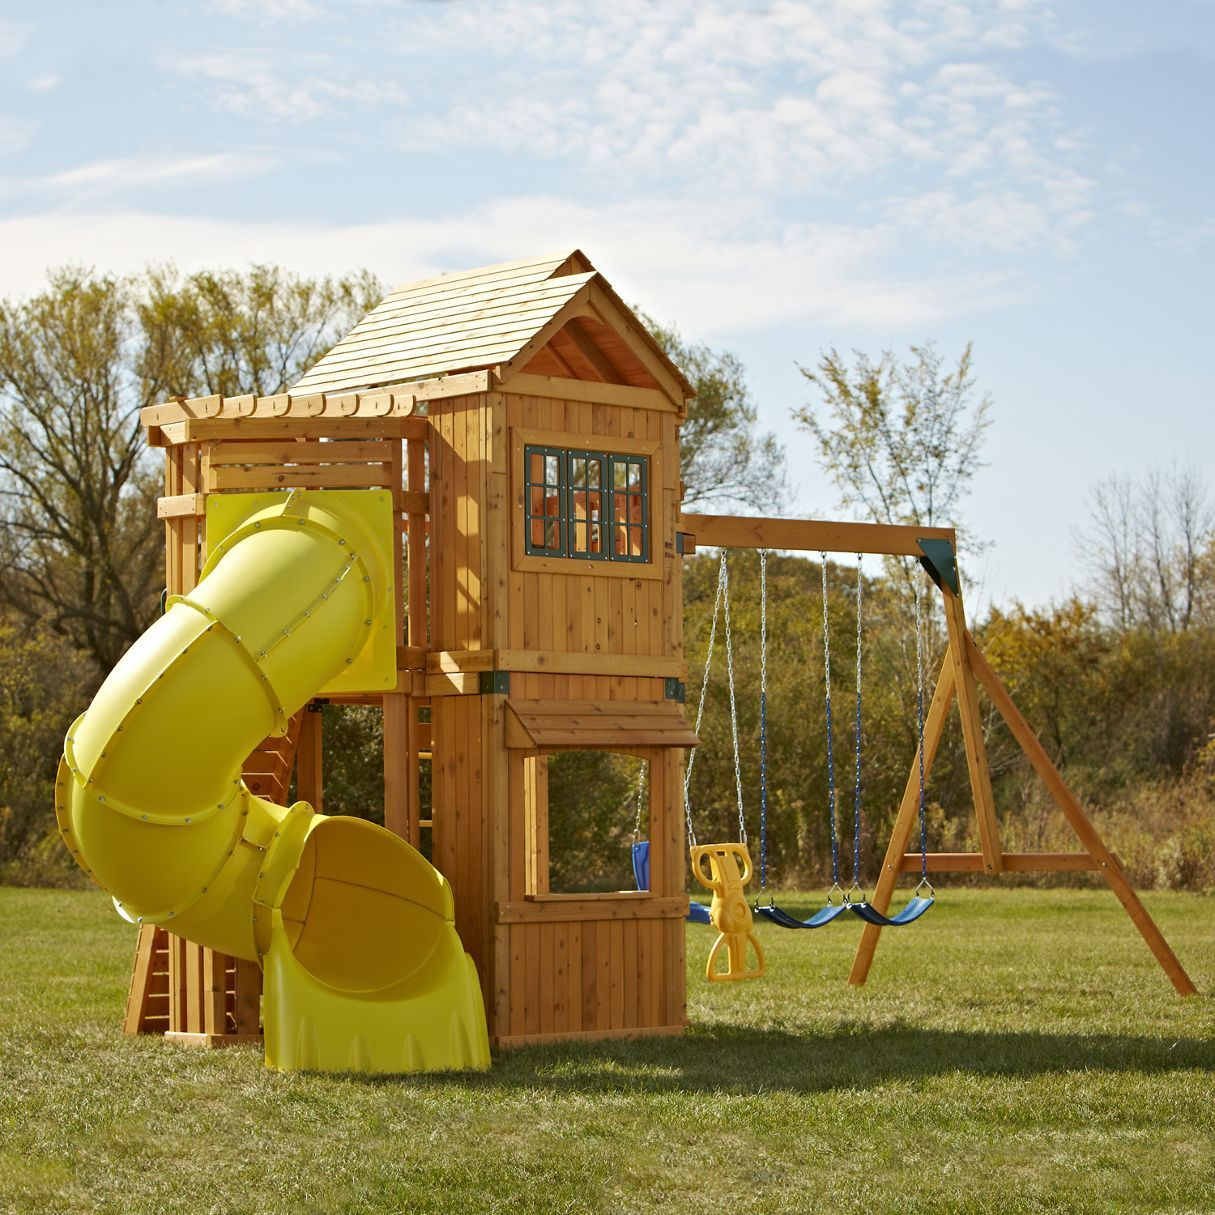 The Swing N Slide Lakewood Wood Complete Play Set Is The Complete Play Destination For Your Backyard Elegant Design With Large Covered Upper Play Deck And